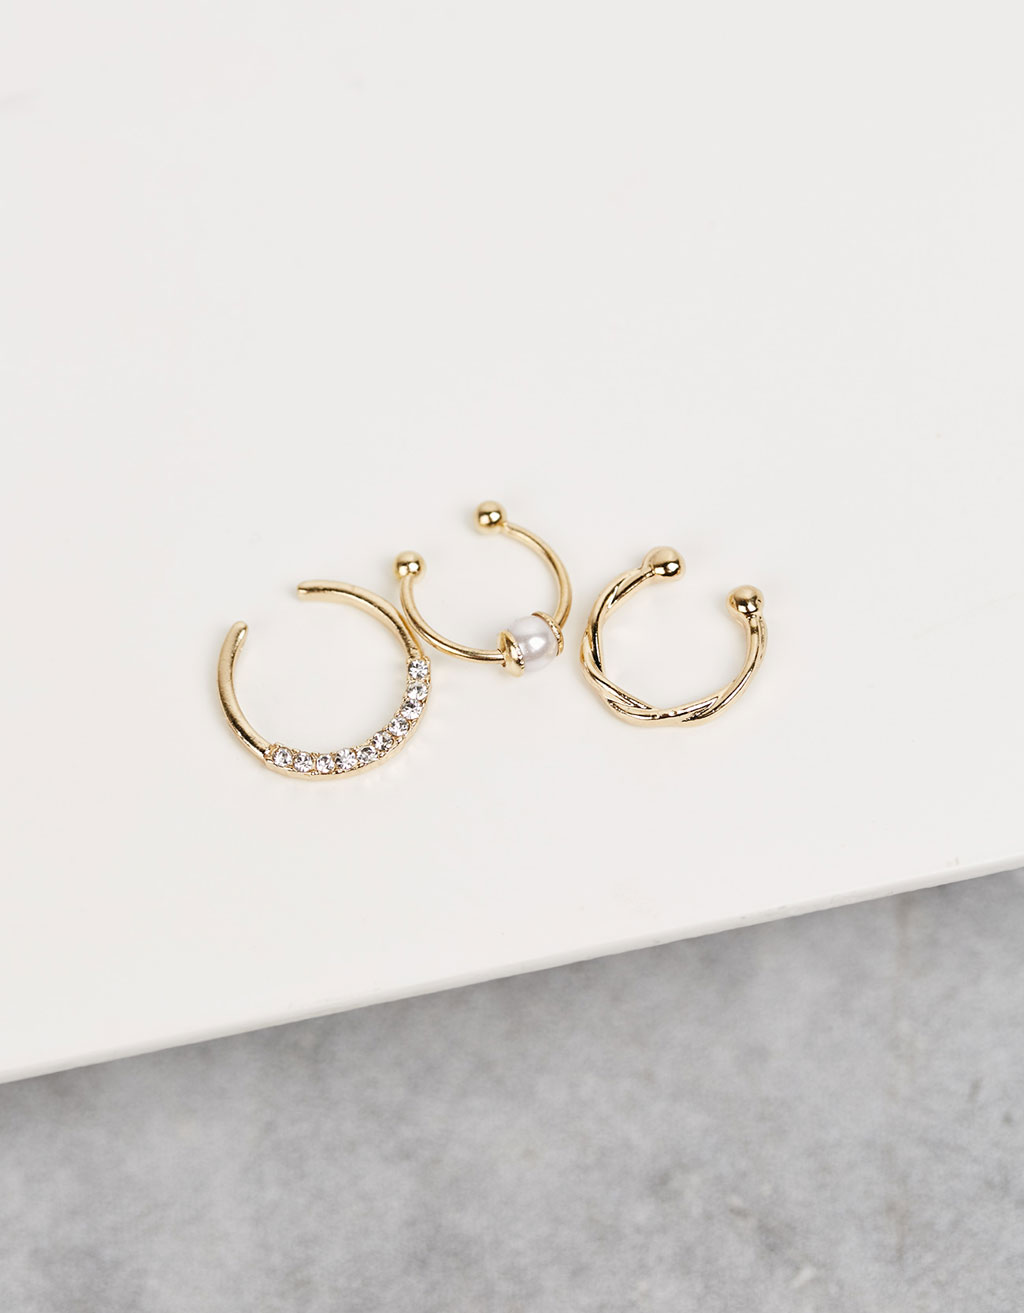 Set Septum, perla y brillantes